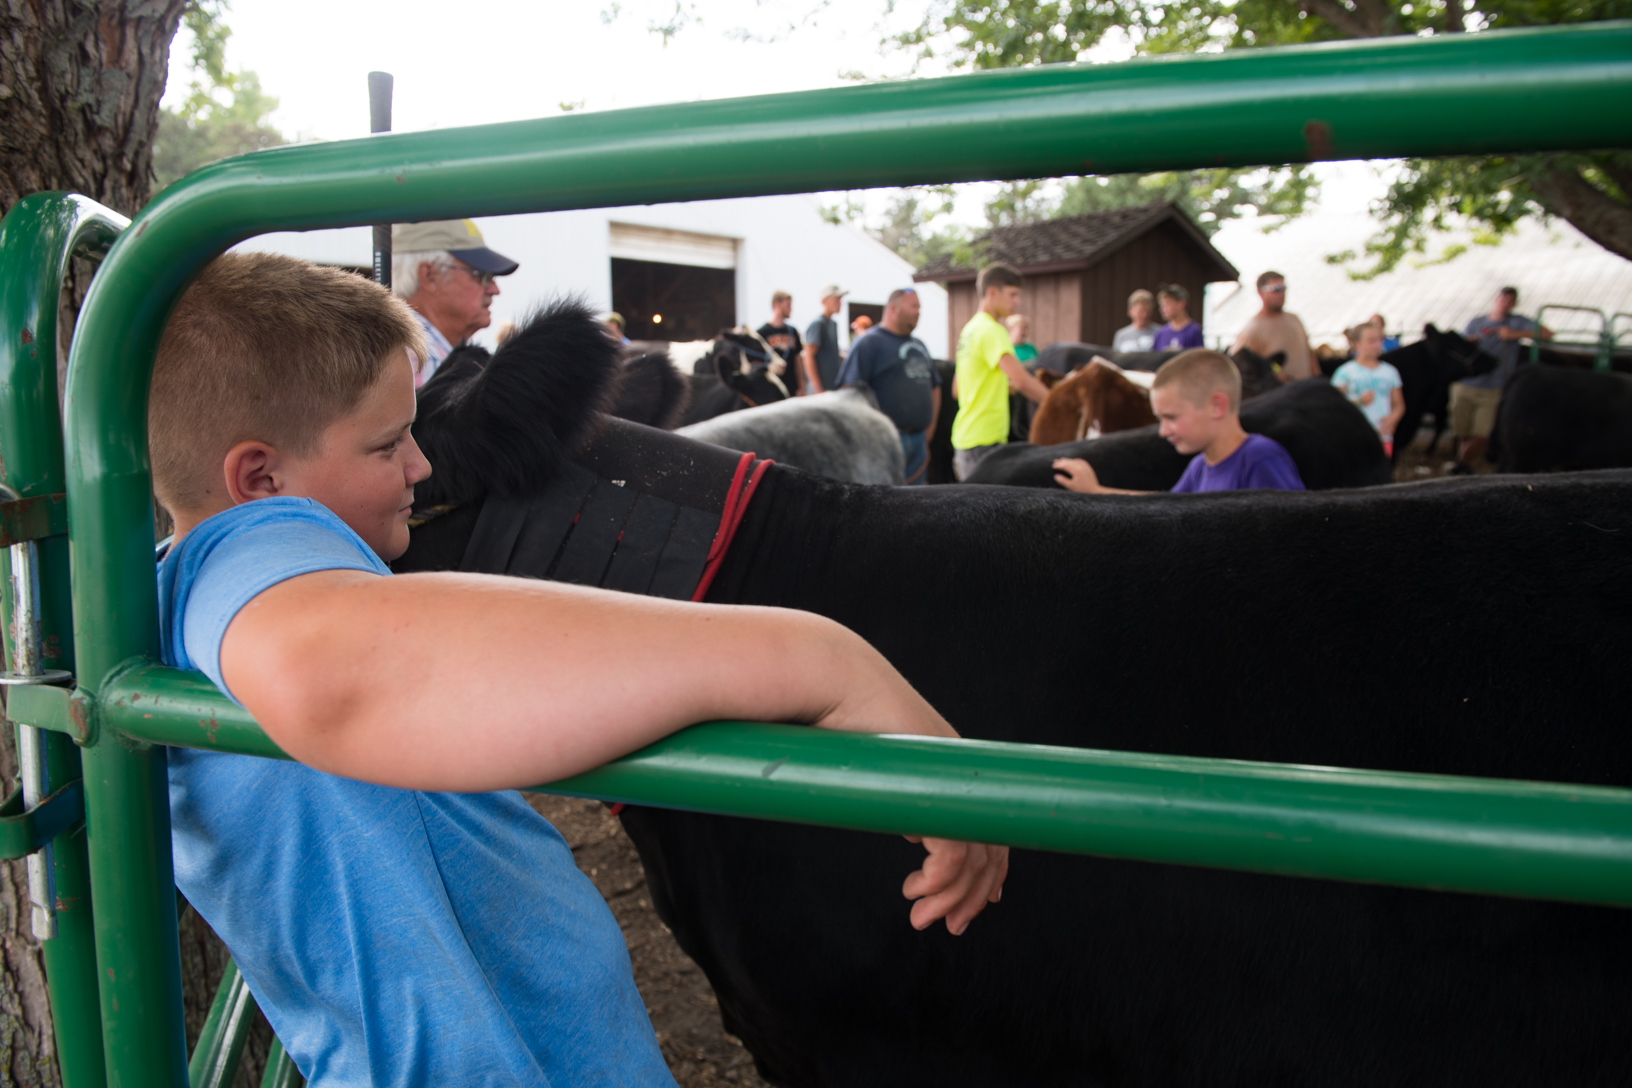 Cale Jensen relaxes with Bella, his Angus heifer, during a practice session at the Bremer County Fair in Waverly. Photo credit: Joseph L. Murphy, Iowa Soybean Association